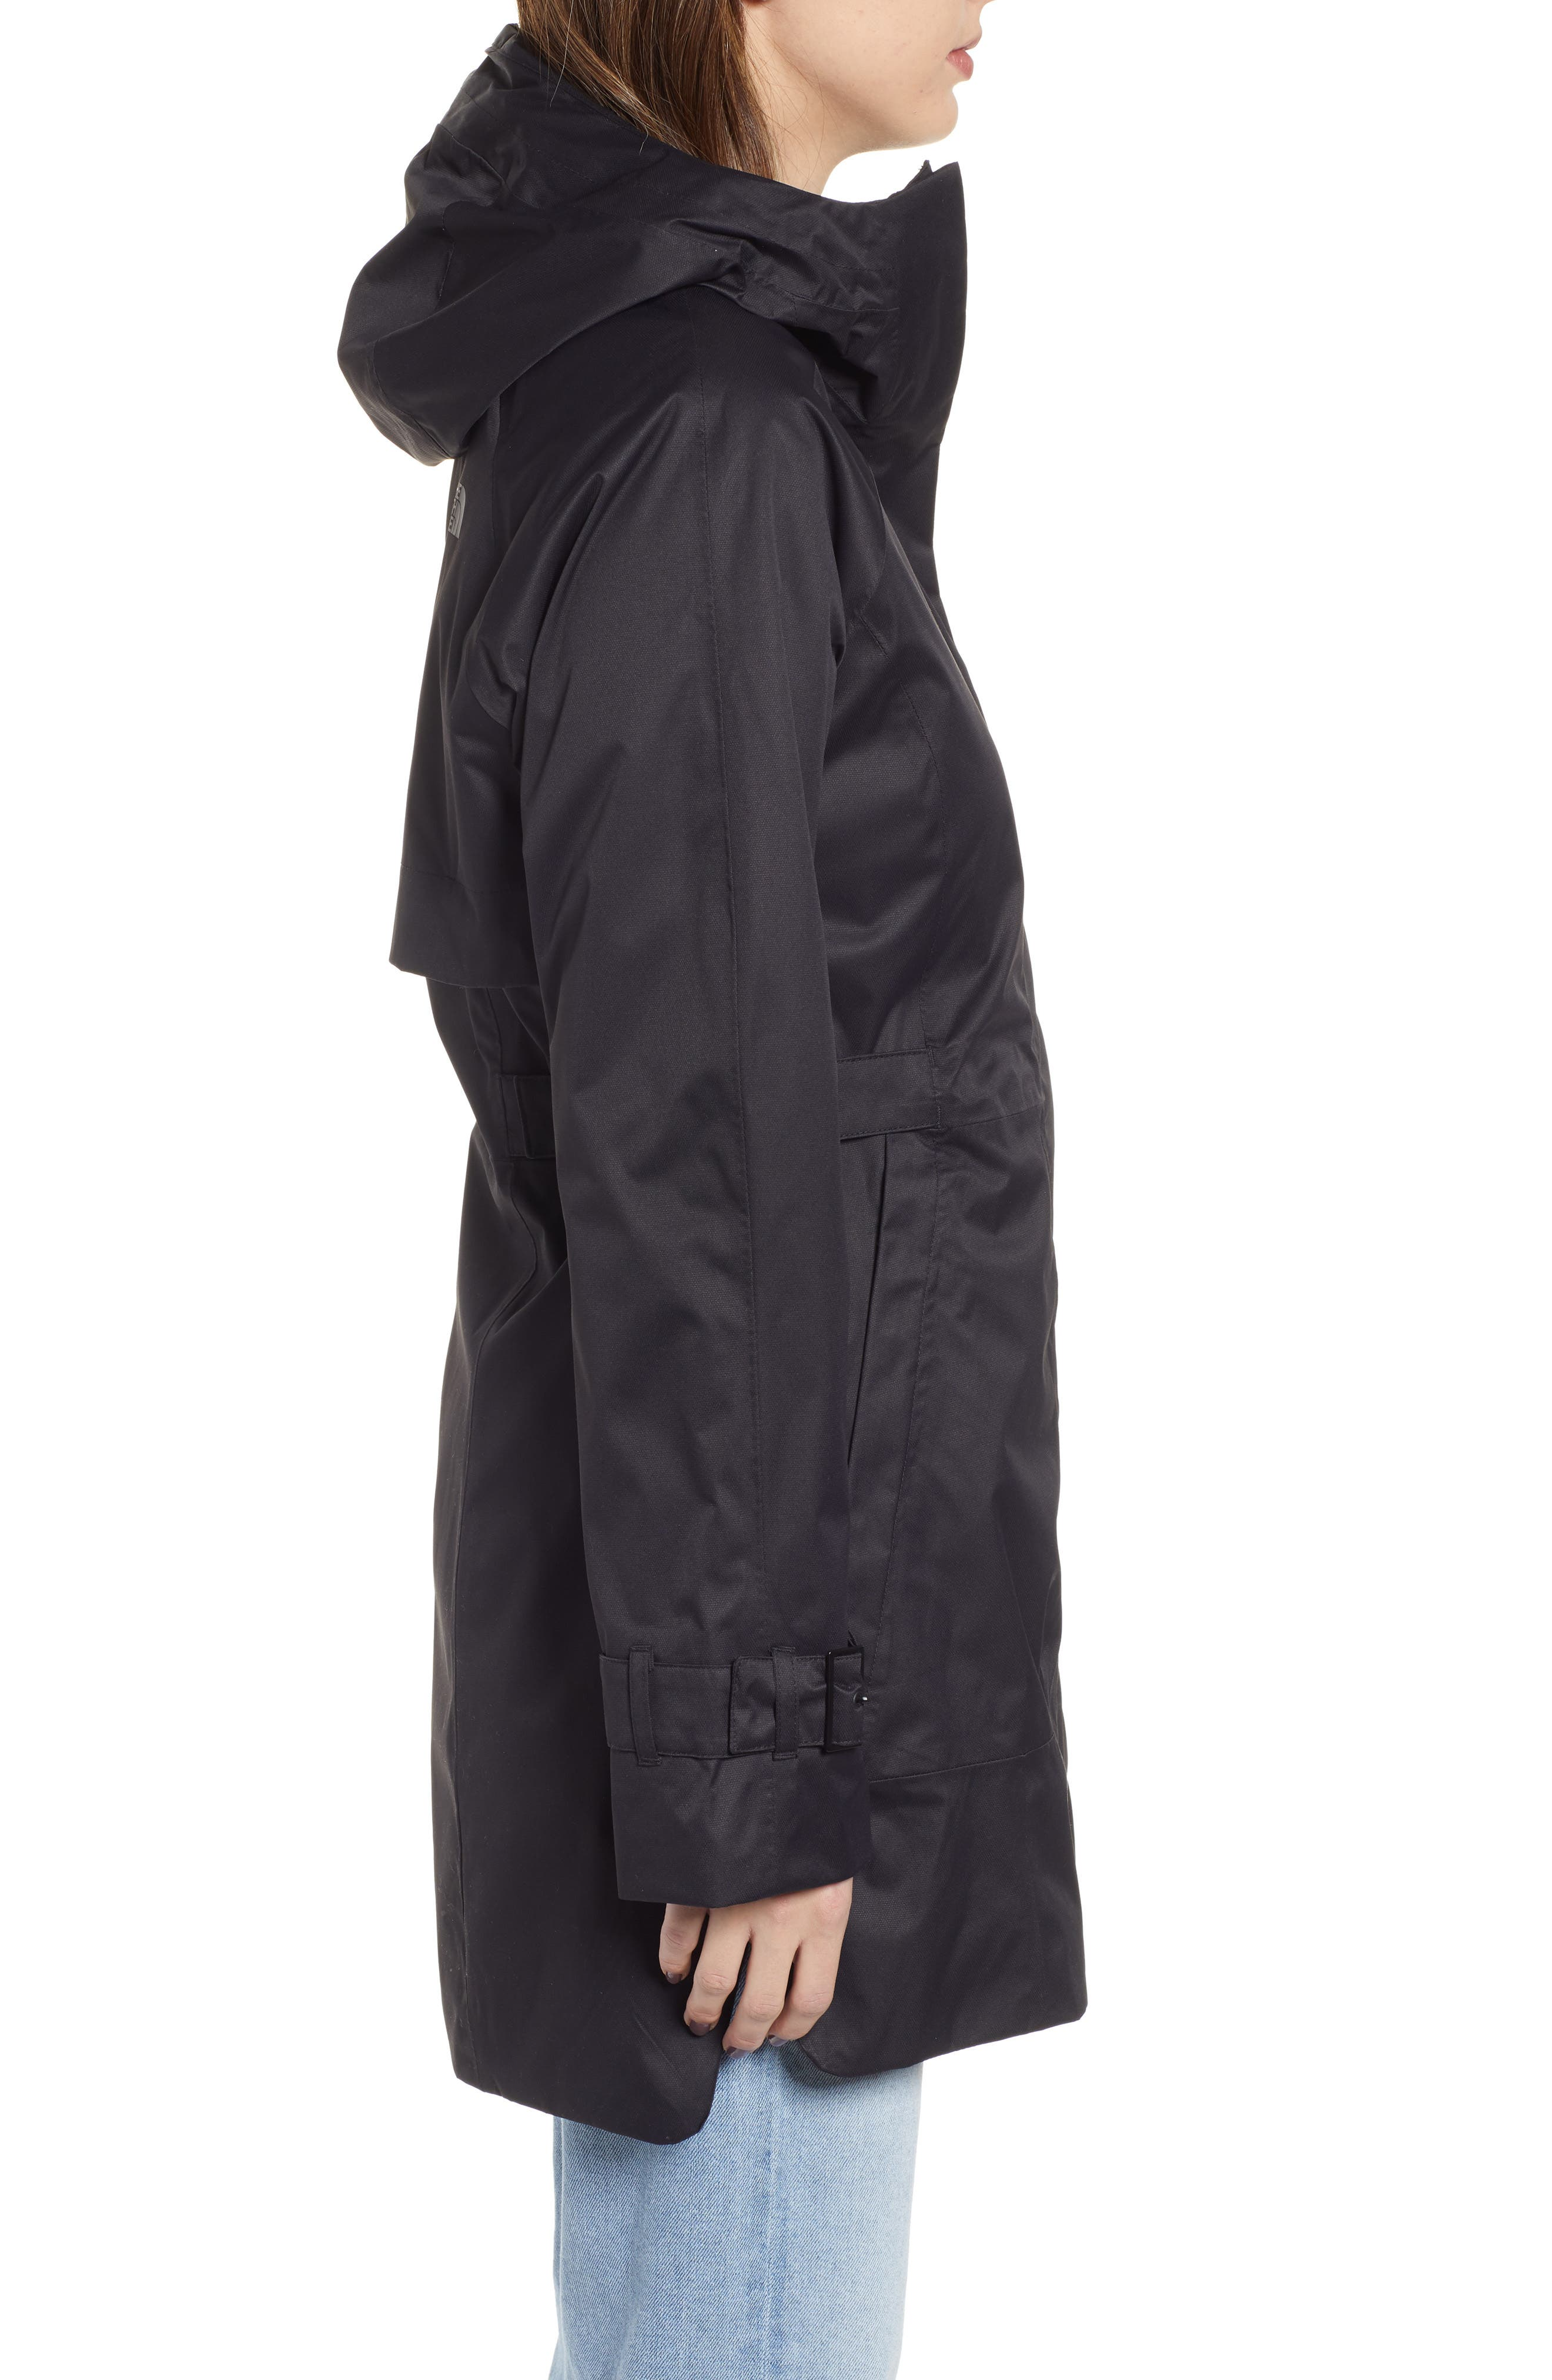 THE NORTH FACE, City Breeze Trench Raincoat, Alternate thumbnail 4, color, TNF BLACK